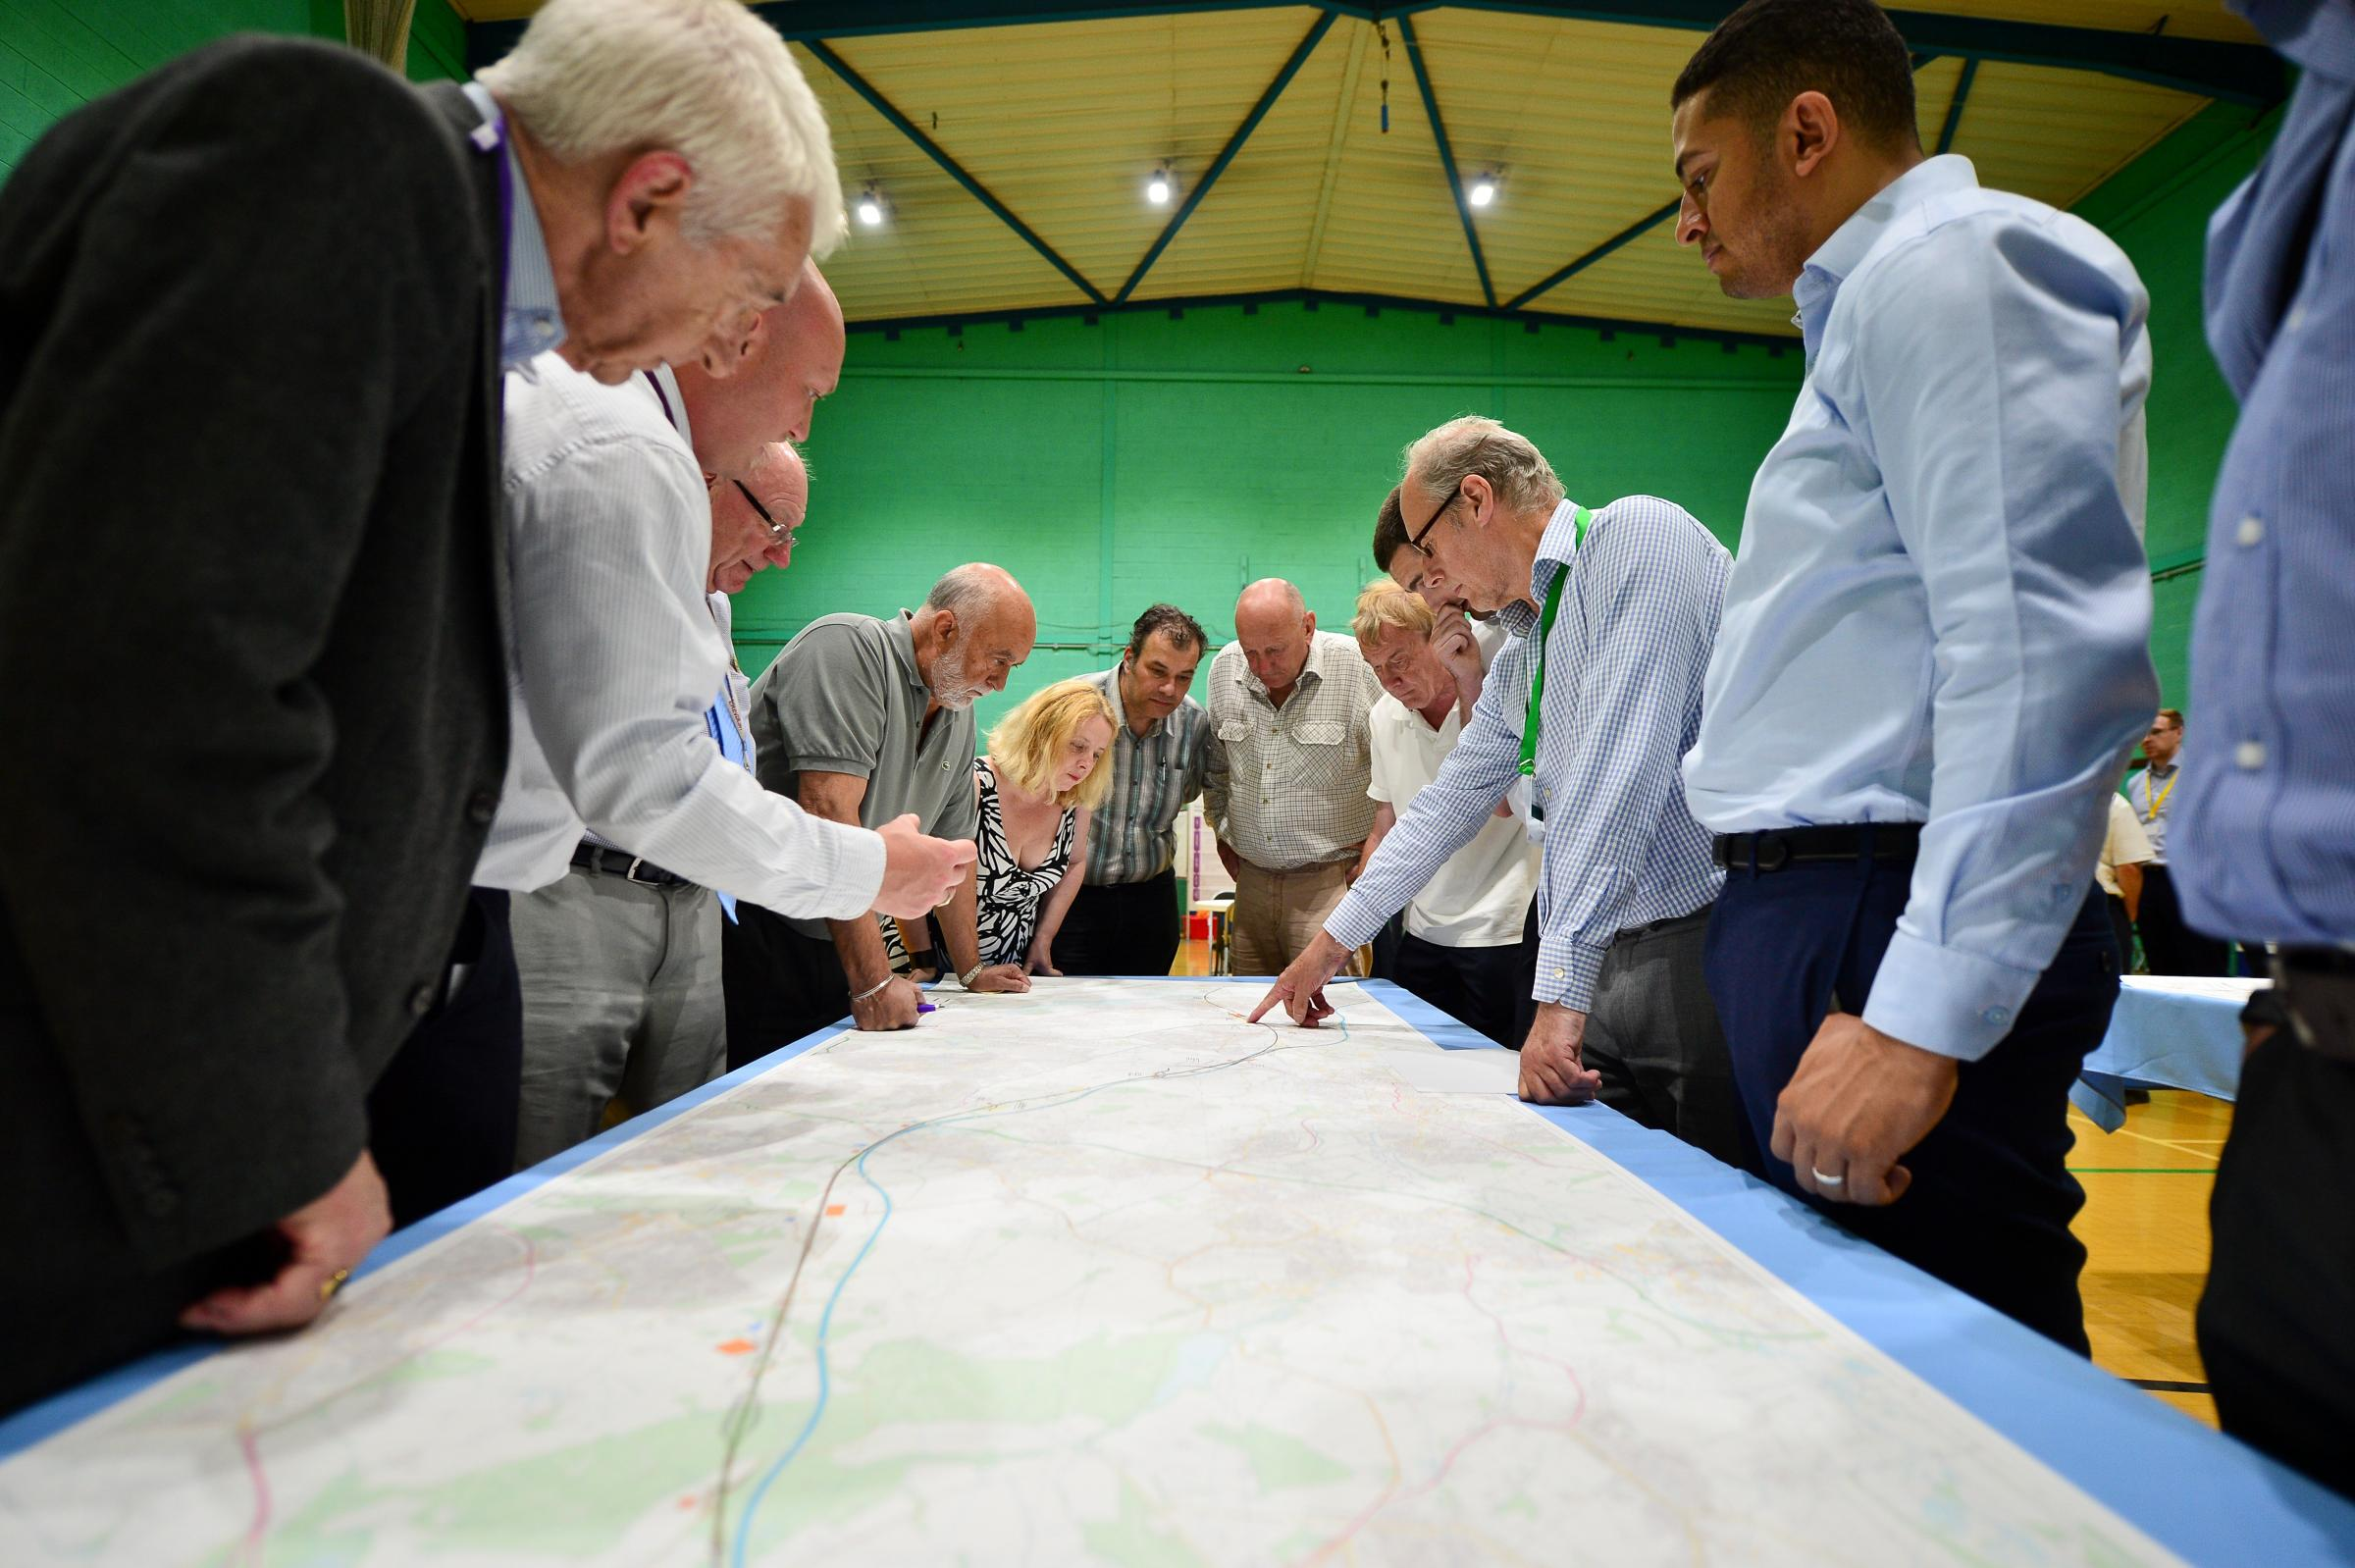 HS2 public information event comes to Middlewich